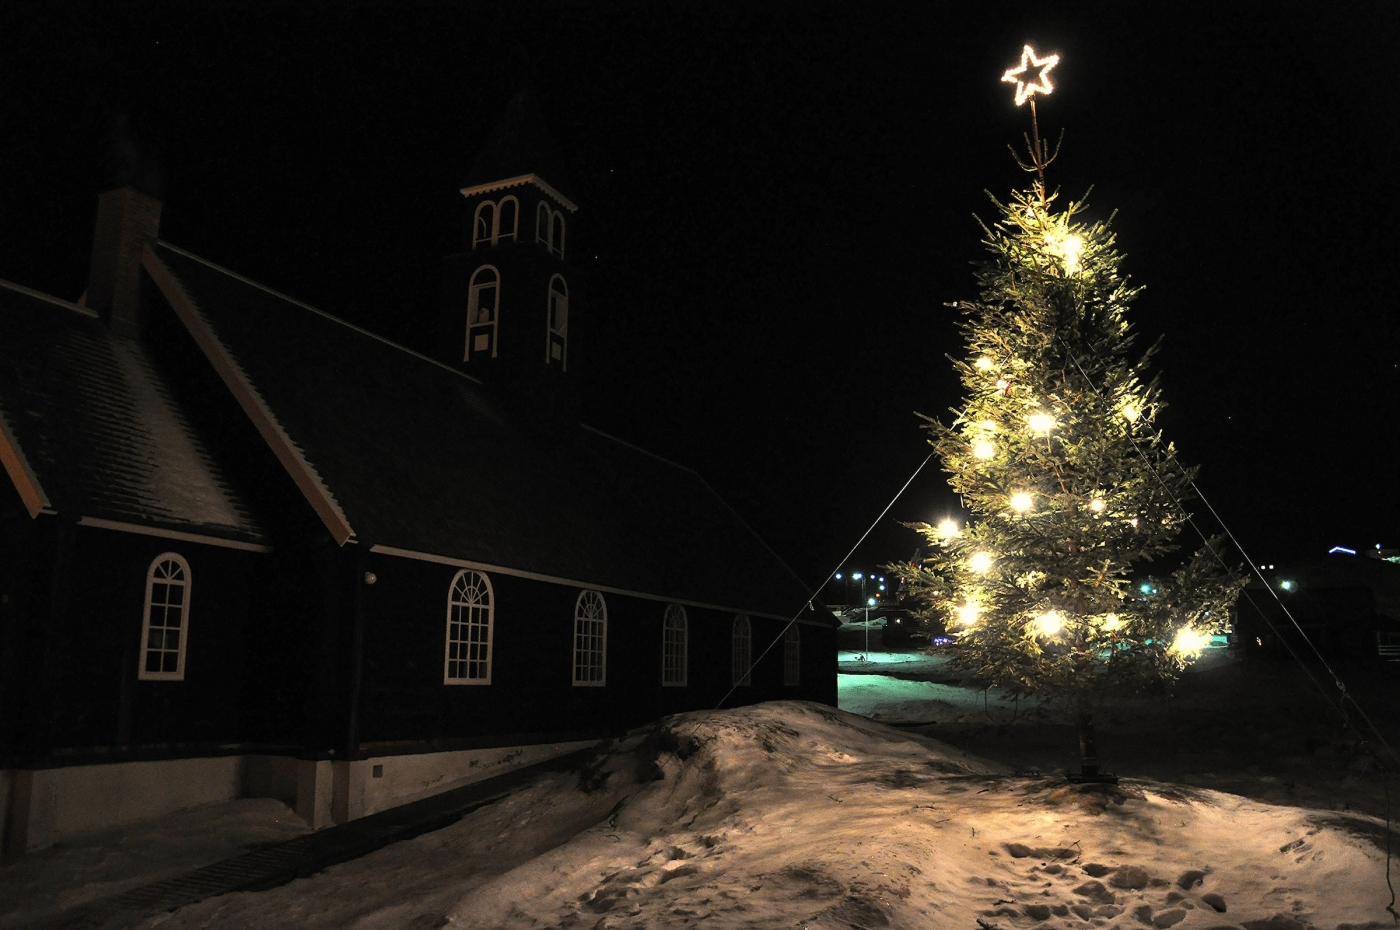 Christmas tree in Ilulissat. Photo by Thomas Nørby Mogensen - Visit Greenland